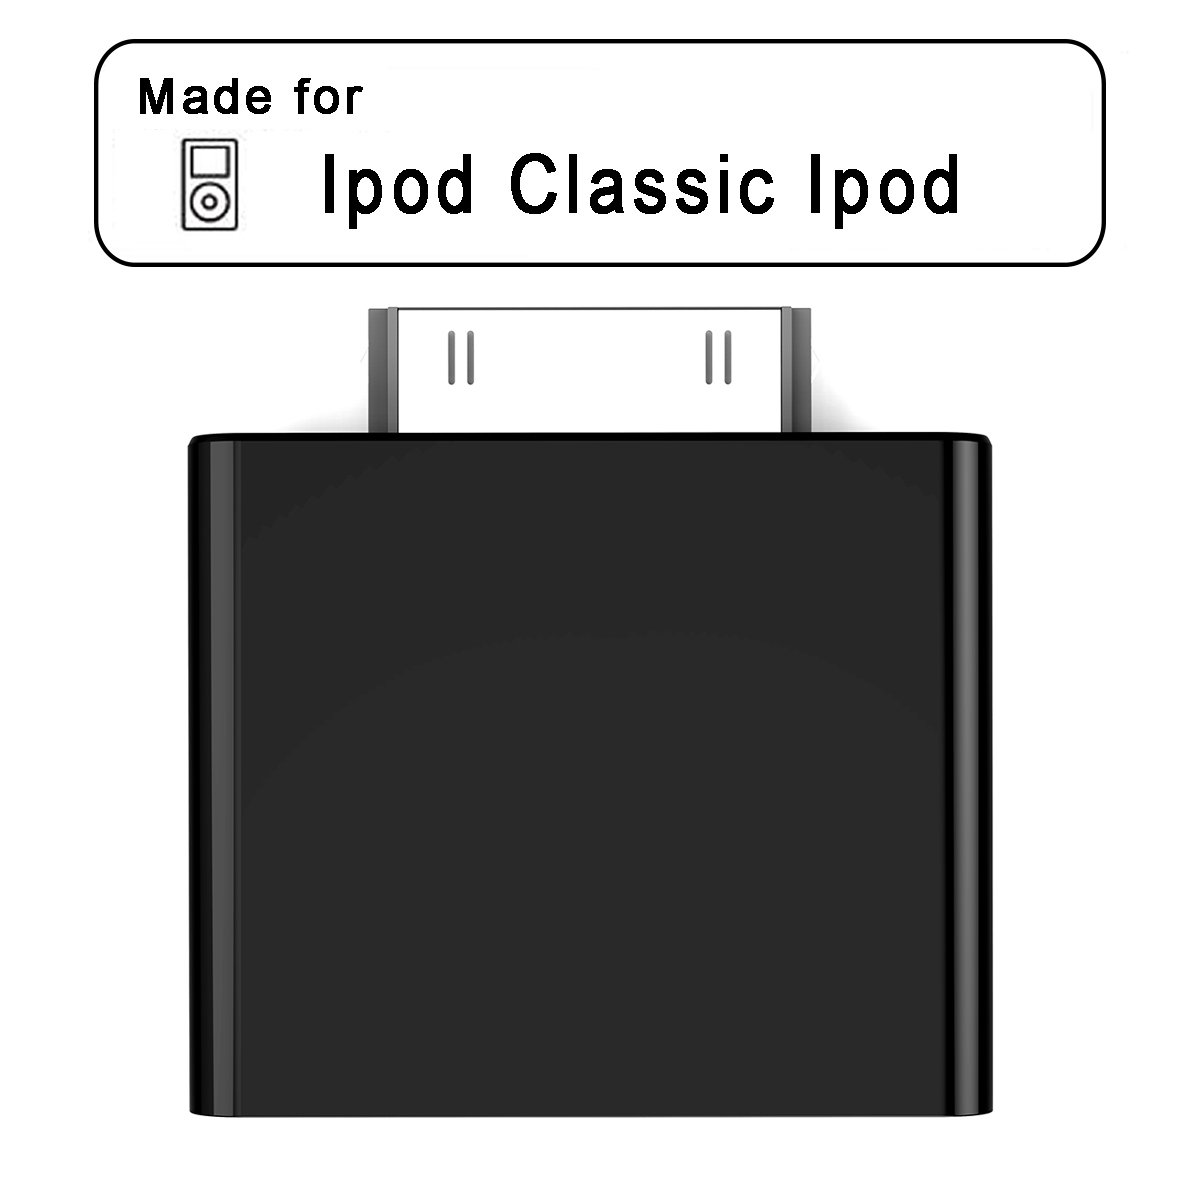 Baile 30-pin Bluetooth Transmitter IPF01 for Ipod Mini Ipod Classic Ipod (Black)